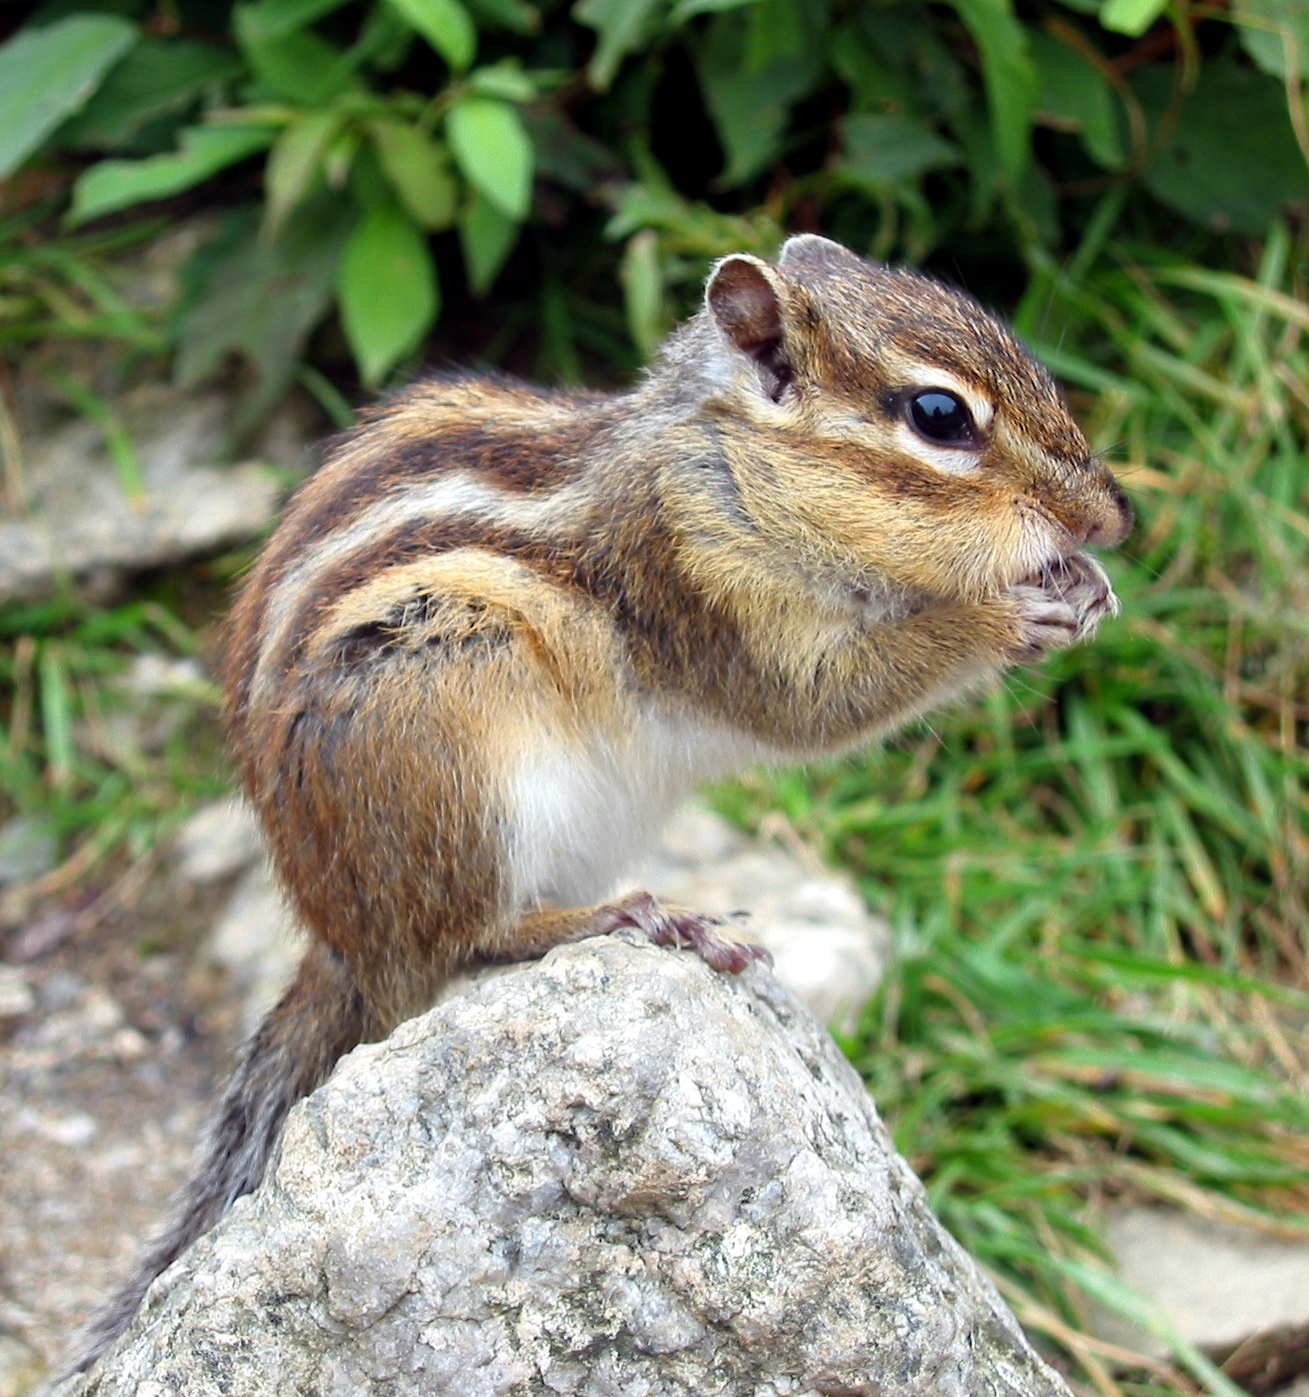 another chipmunk